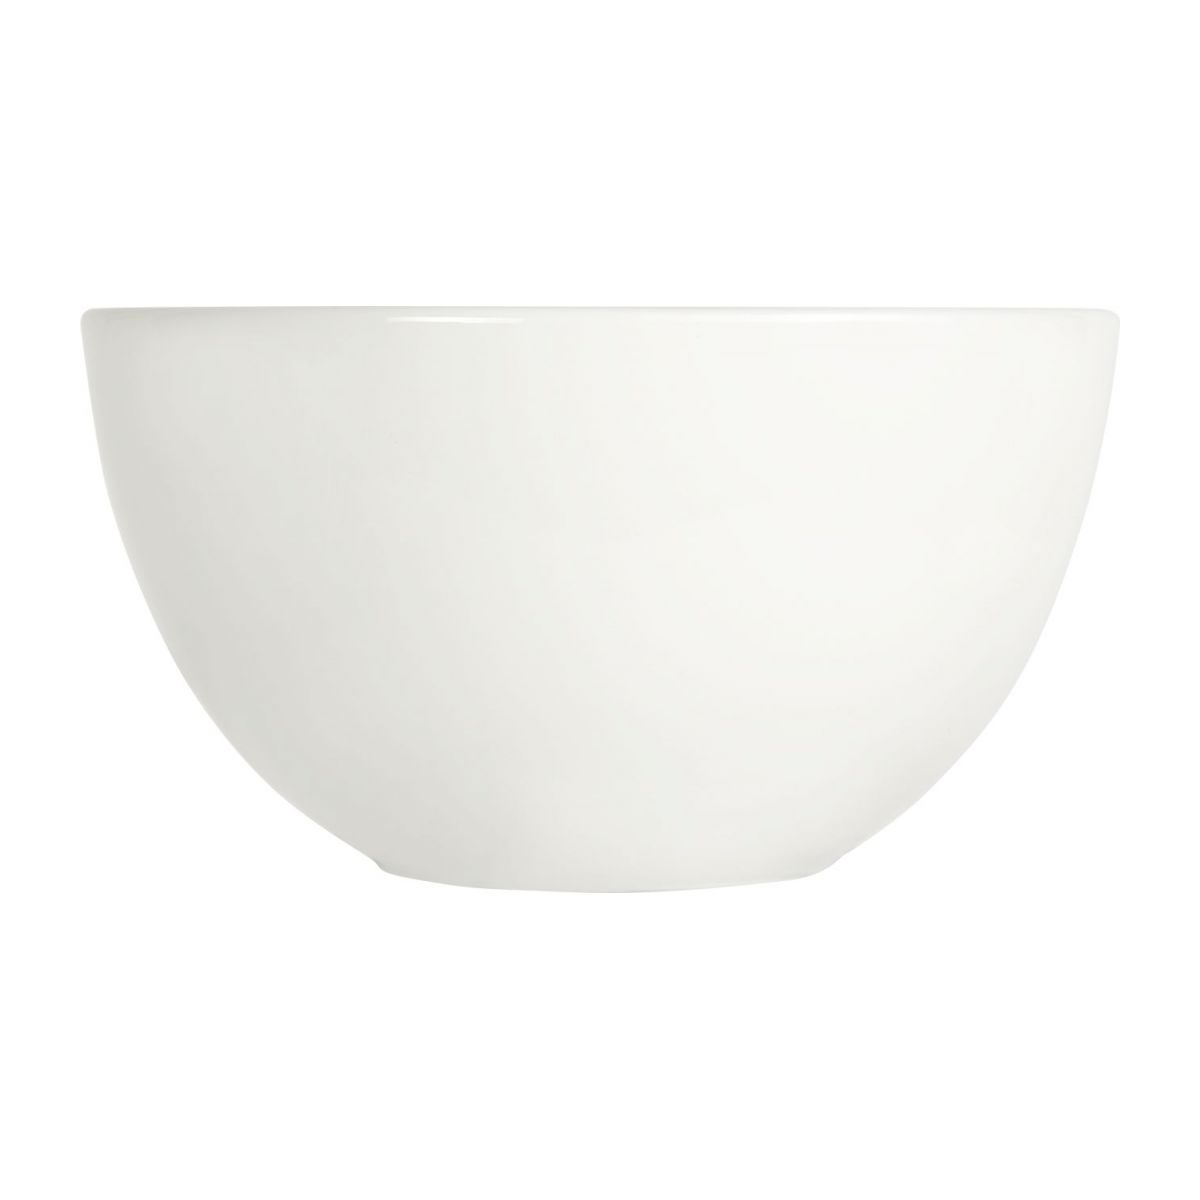 Small cereal bowl  n°2